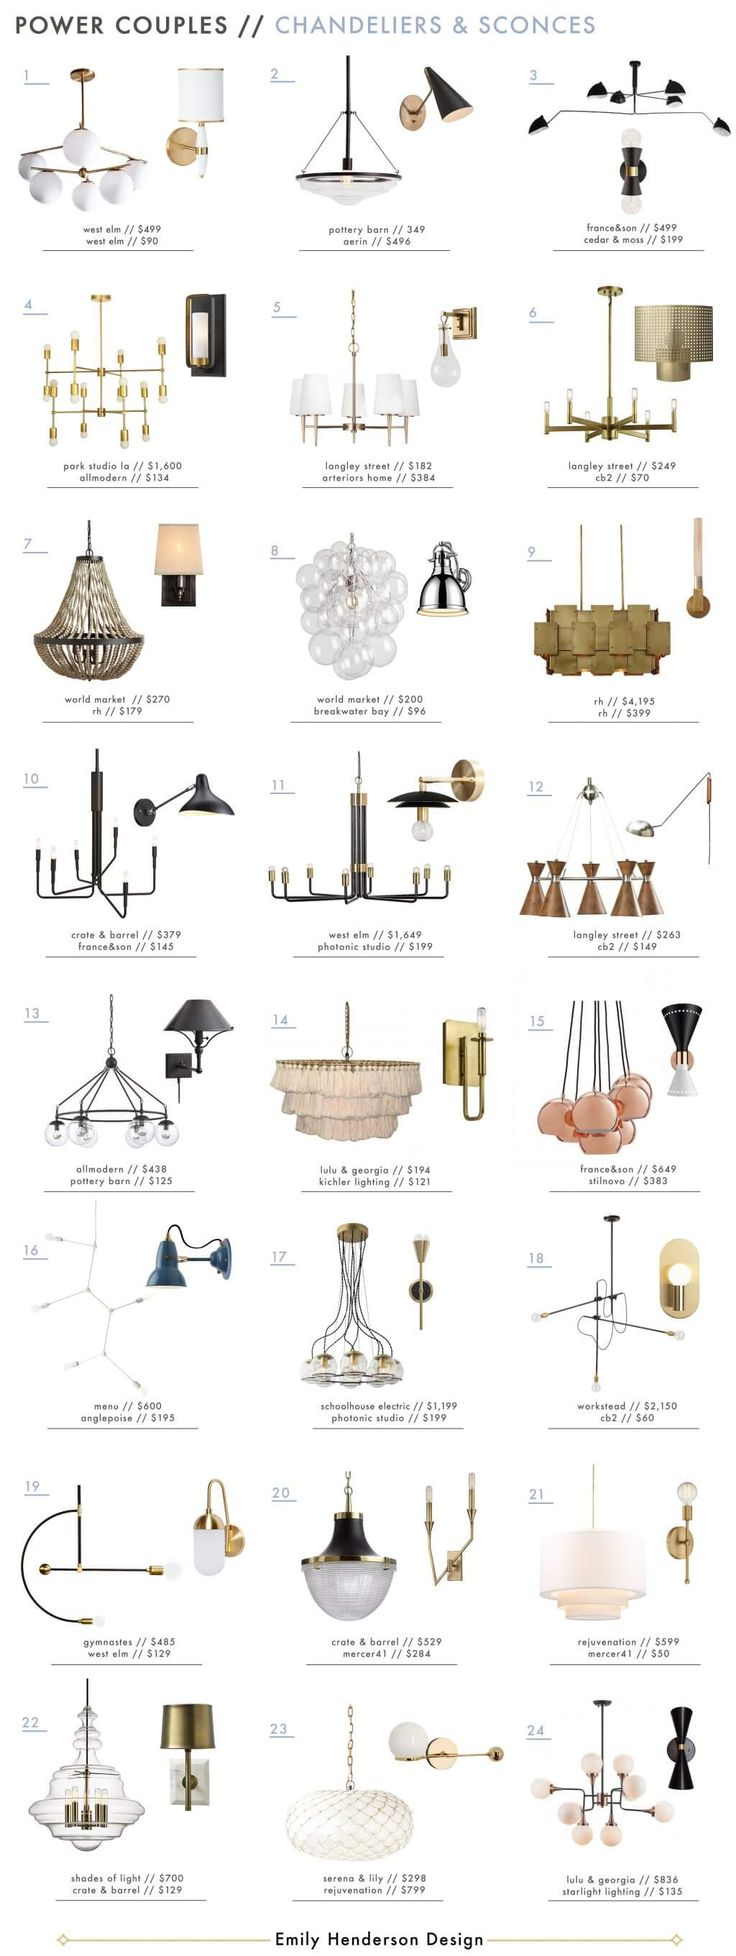 Power Couples: Chandeliers and Sconces